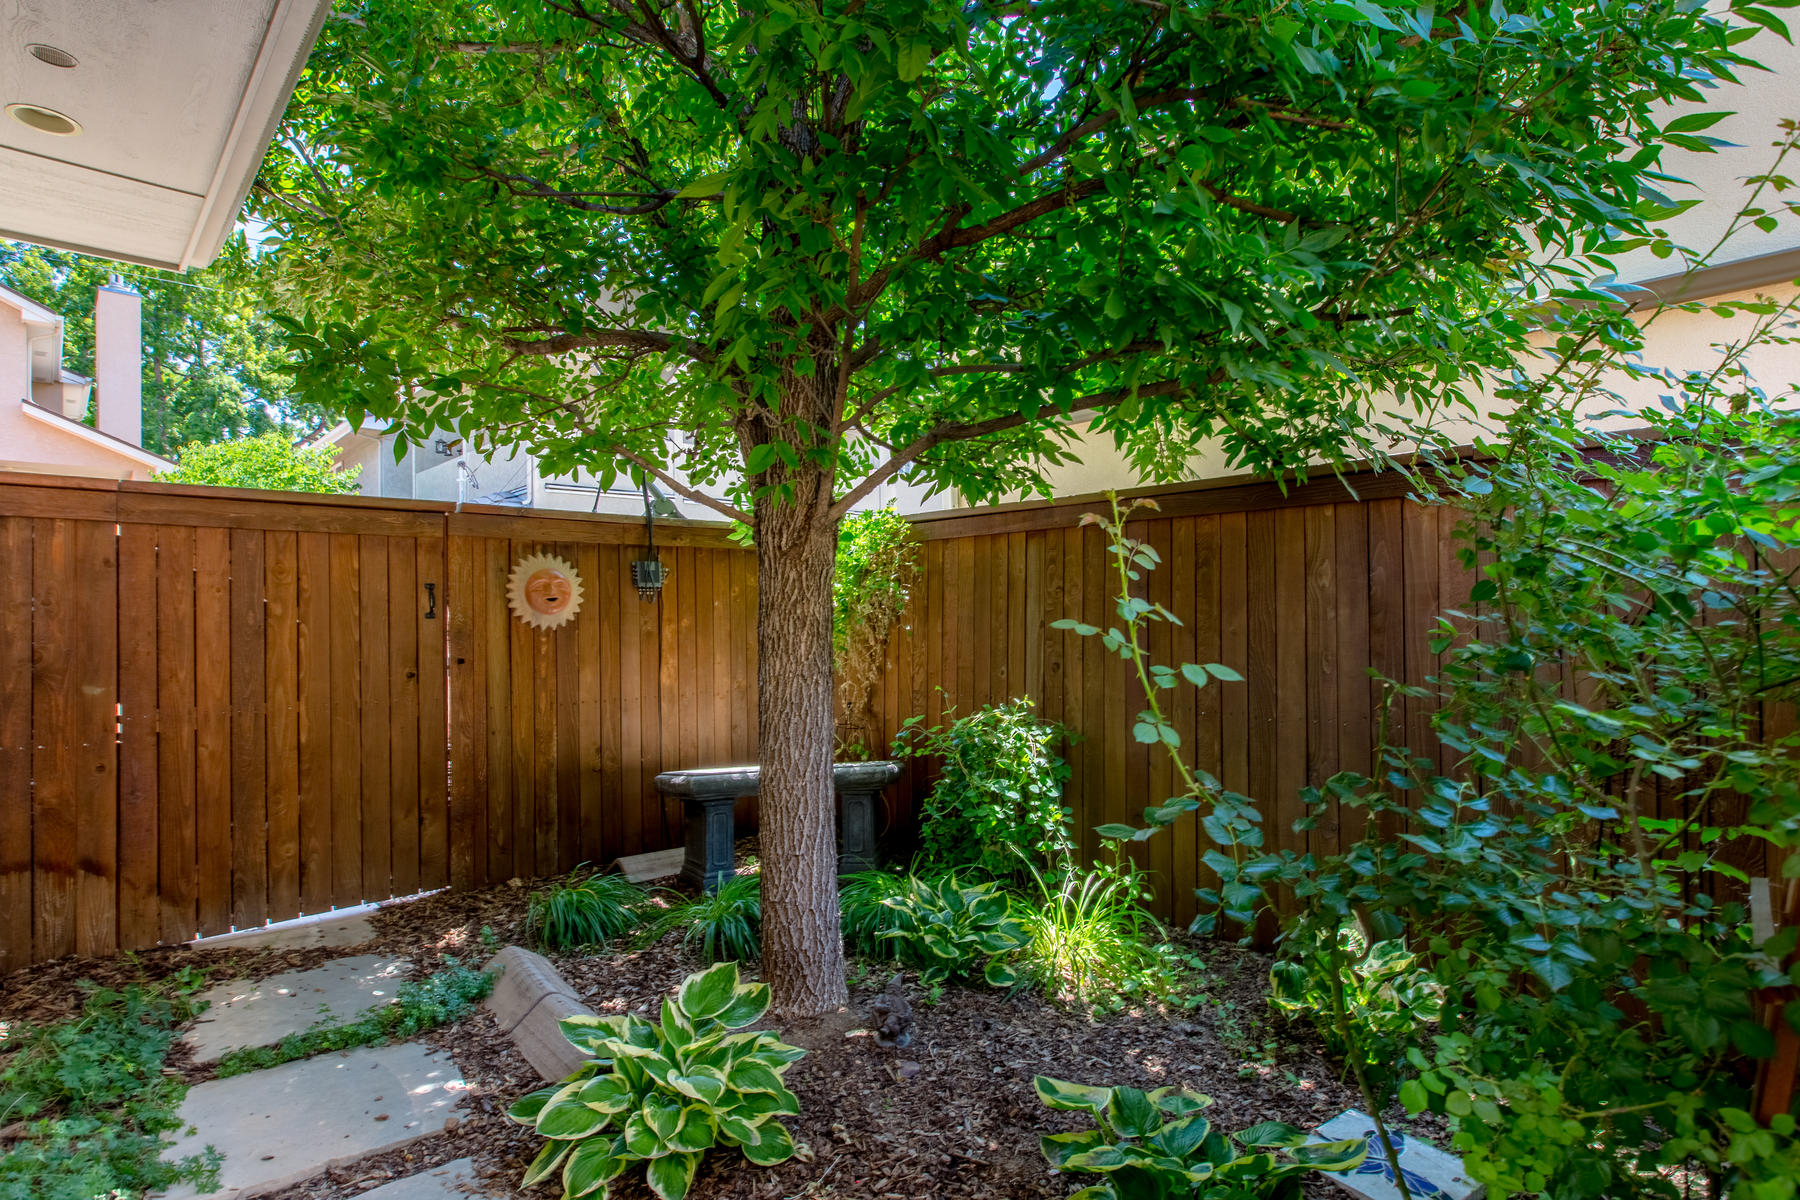 Additional photo for property listing at 520 Madison St 520 Madison Street Denver, Colorado 80206 United States